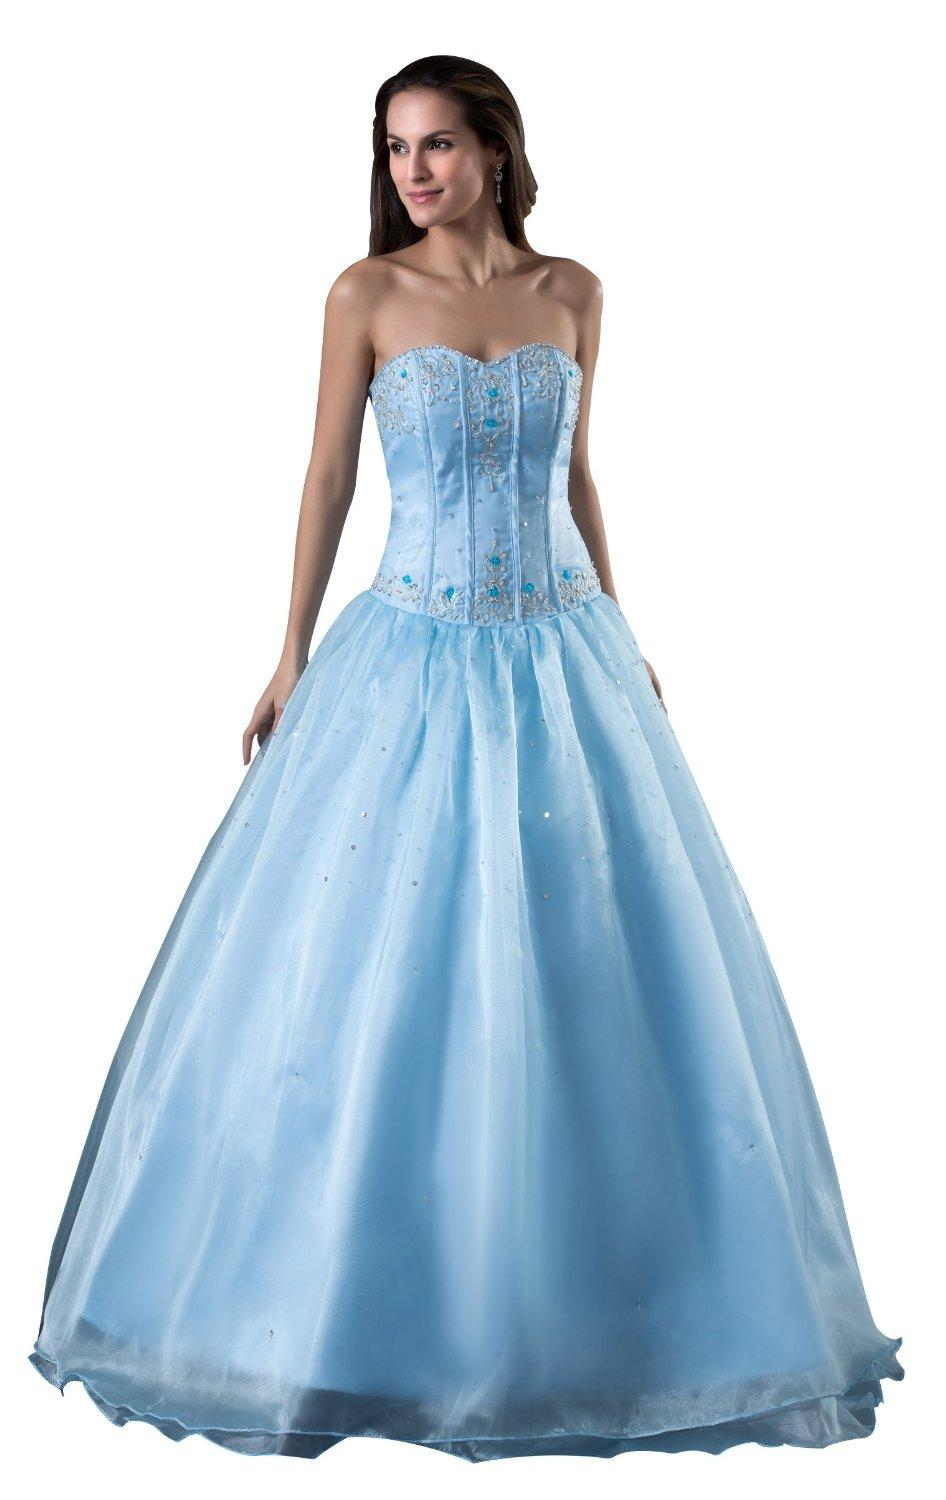 Asestilo store elegant turquoise dresses turquoise wedding dress with built in bra sweetheart design beads and zipper 3 or more layers and 6 12 bones junglespirit Gallery